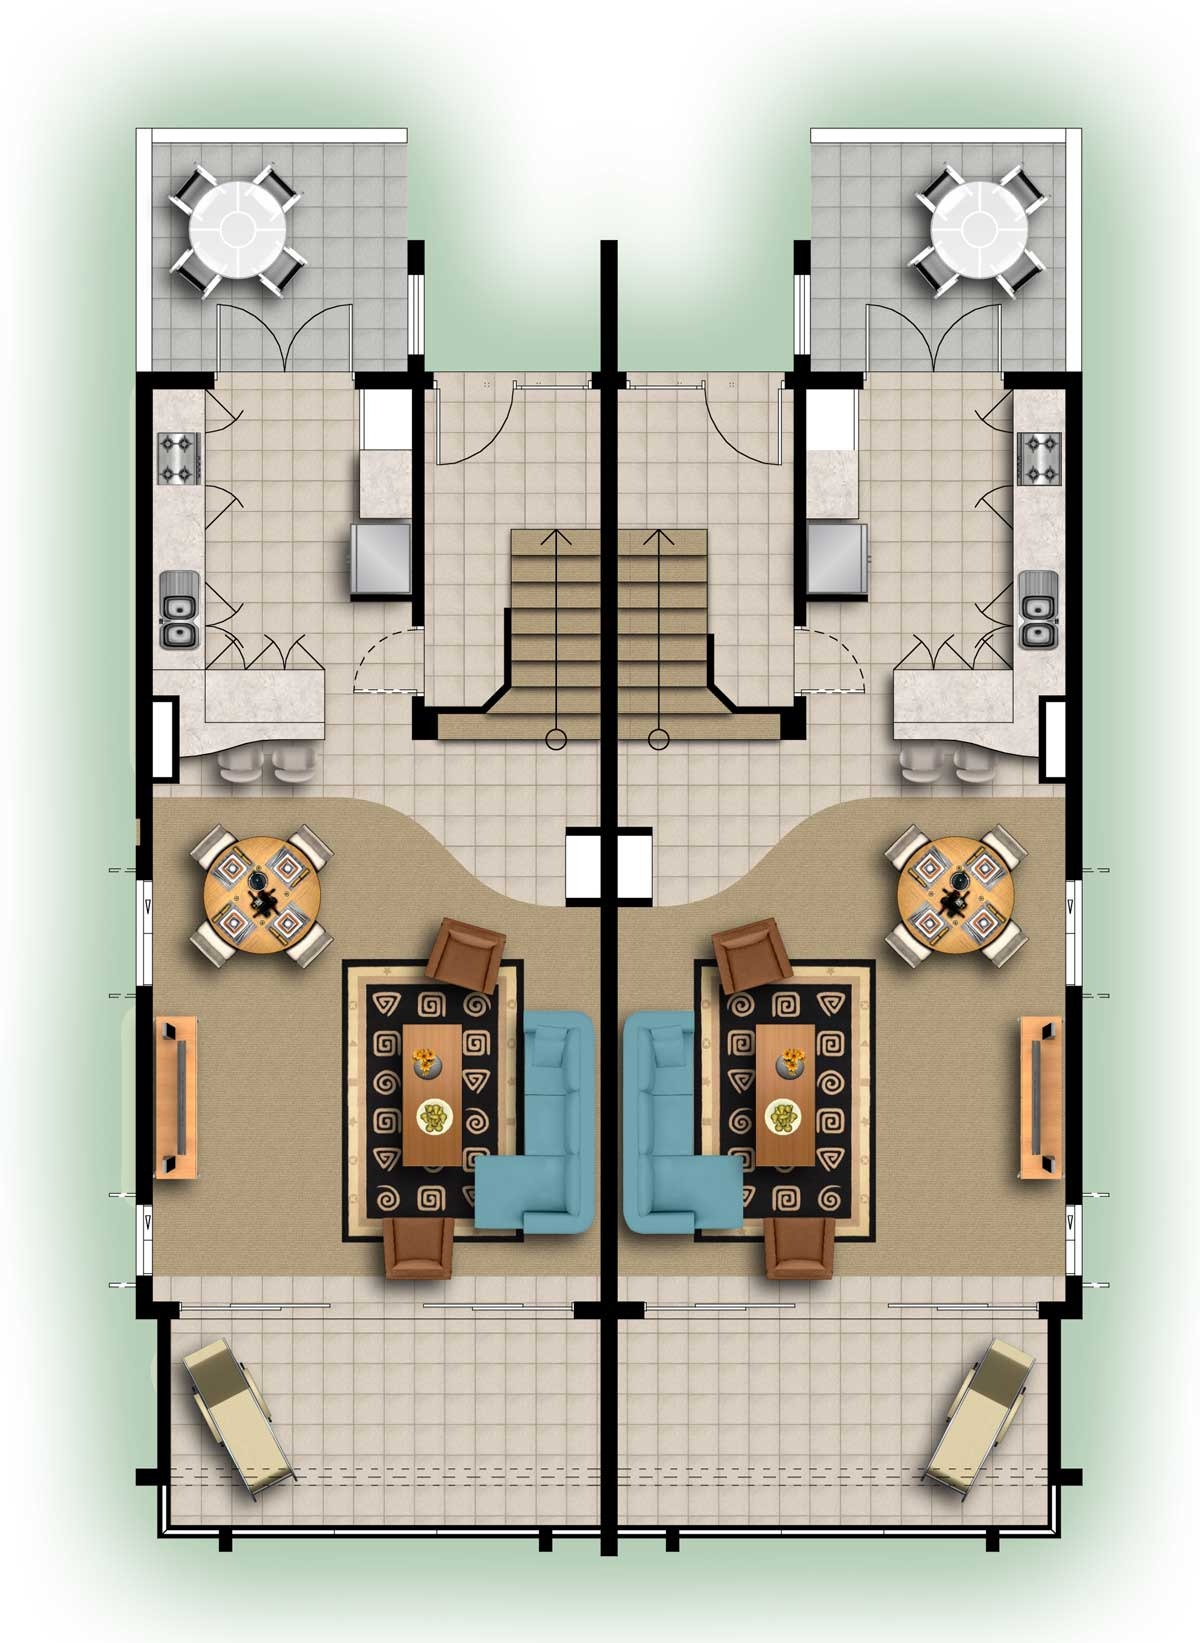 Free Online Architecture Design for Home Inspirational Interior Plan Drawing Floor Plans Line Free Amusing Draw